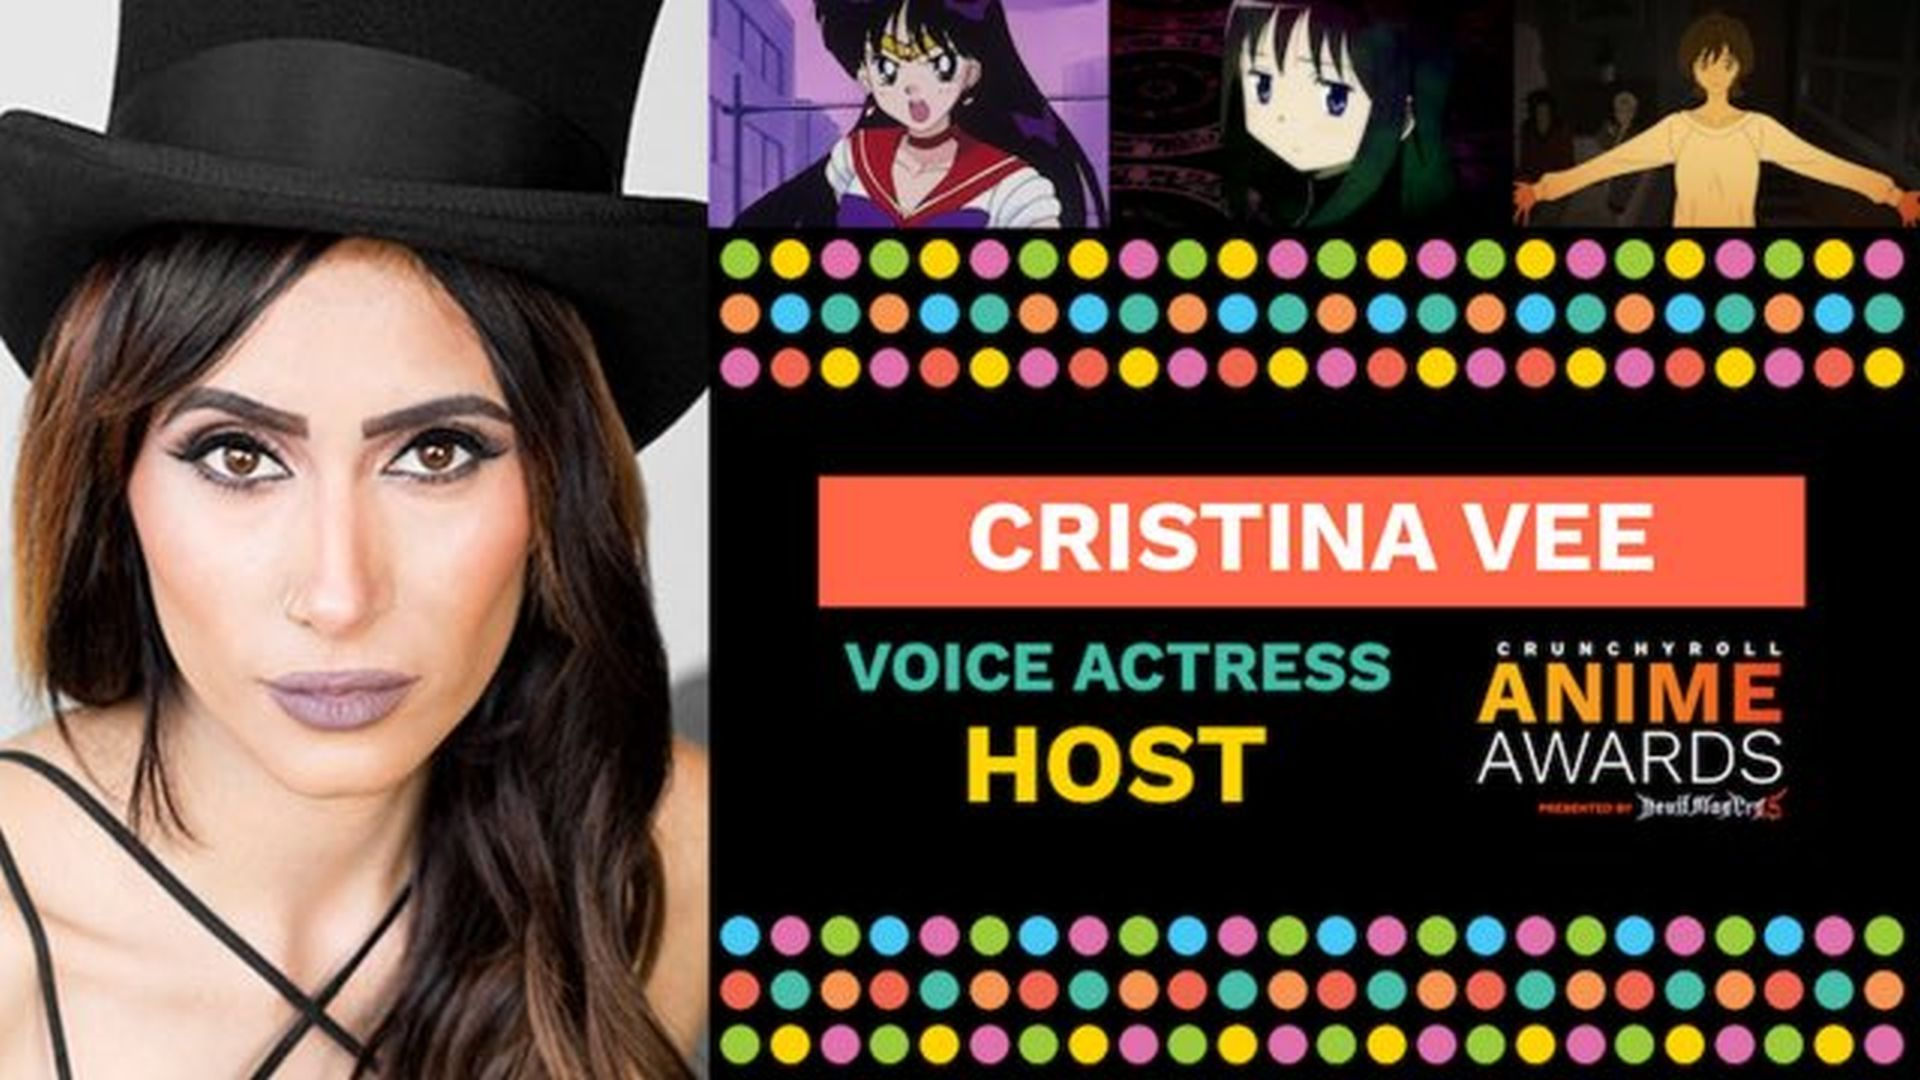 Cristina Vee to Host Crunchyroll Anime Awards and Here are